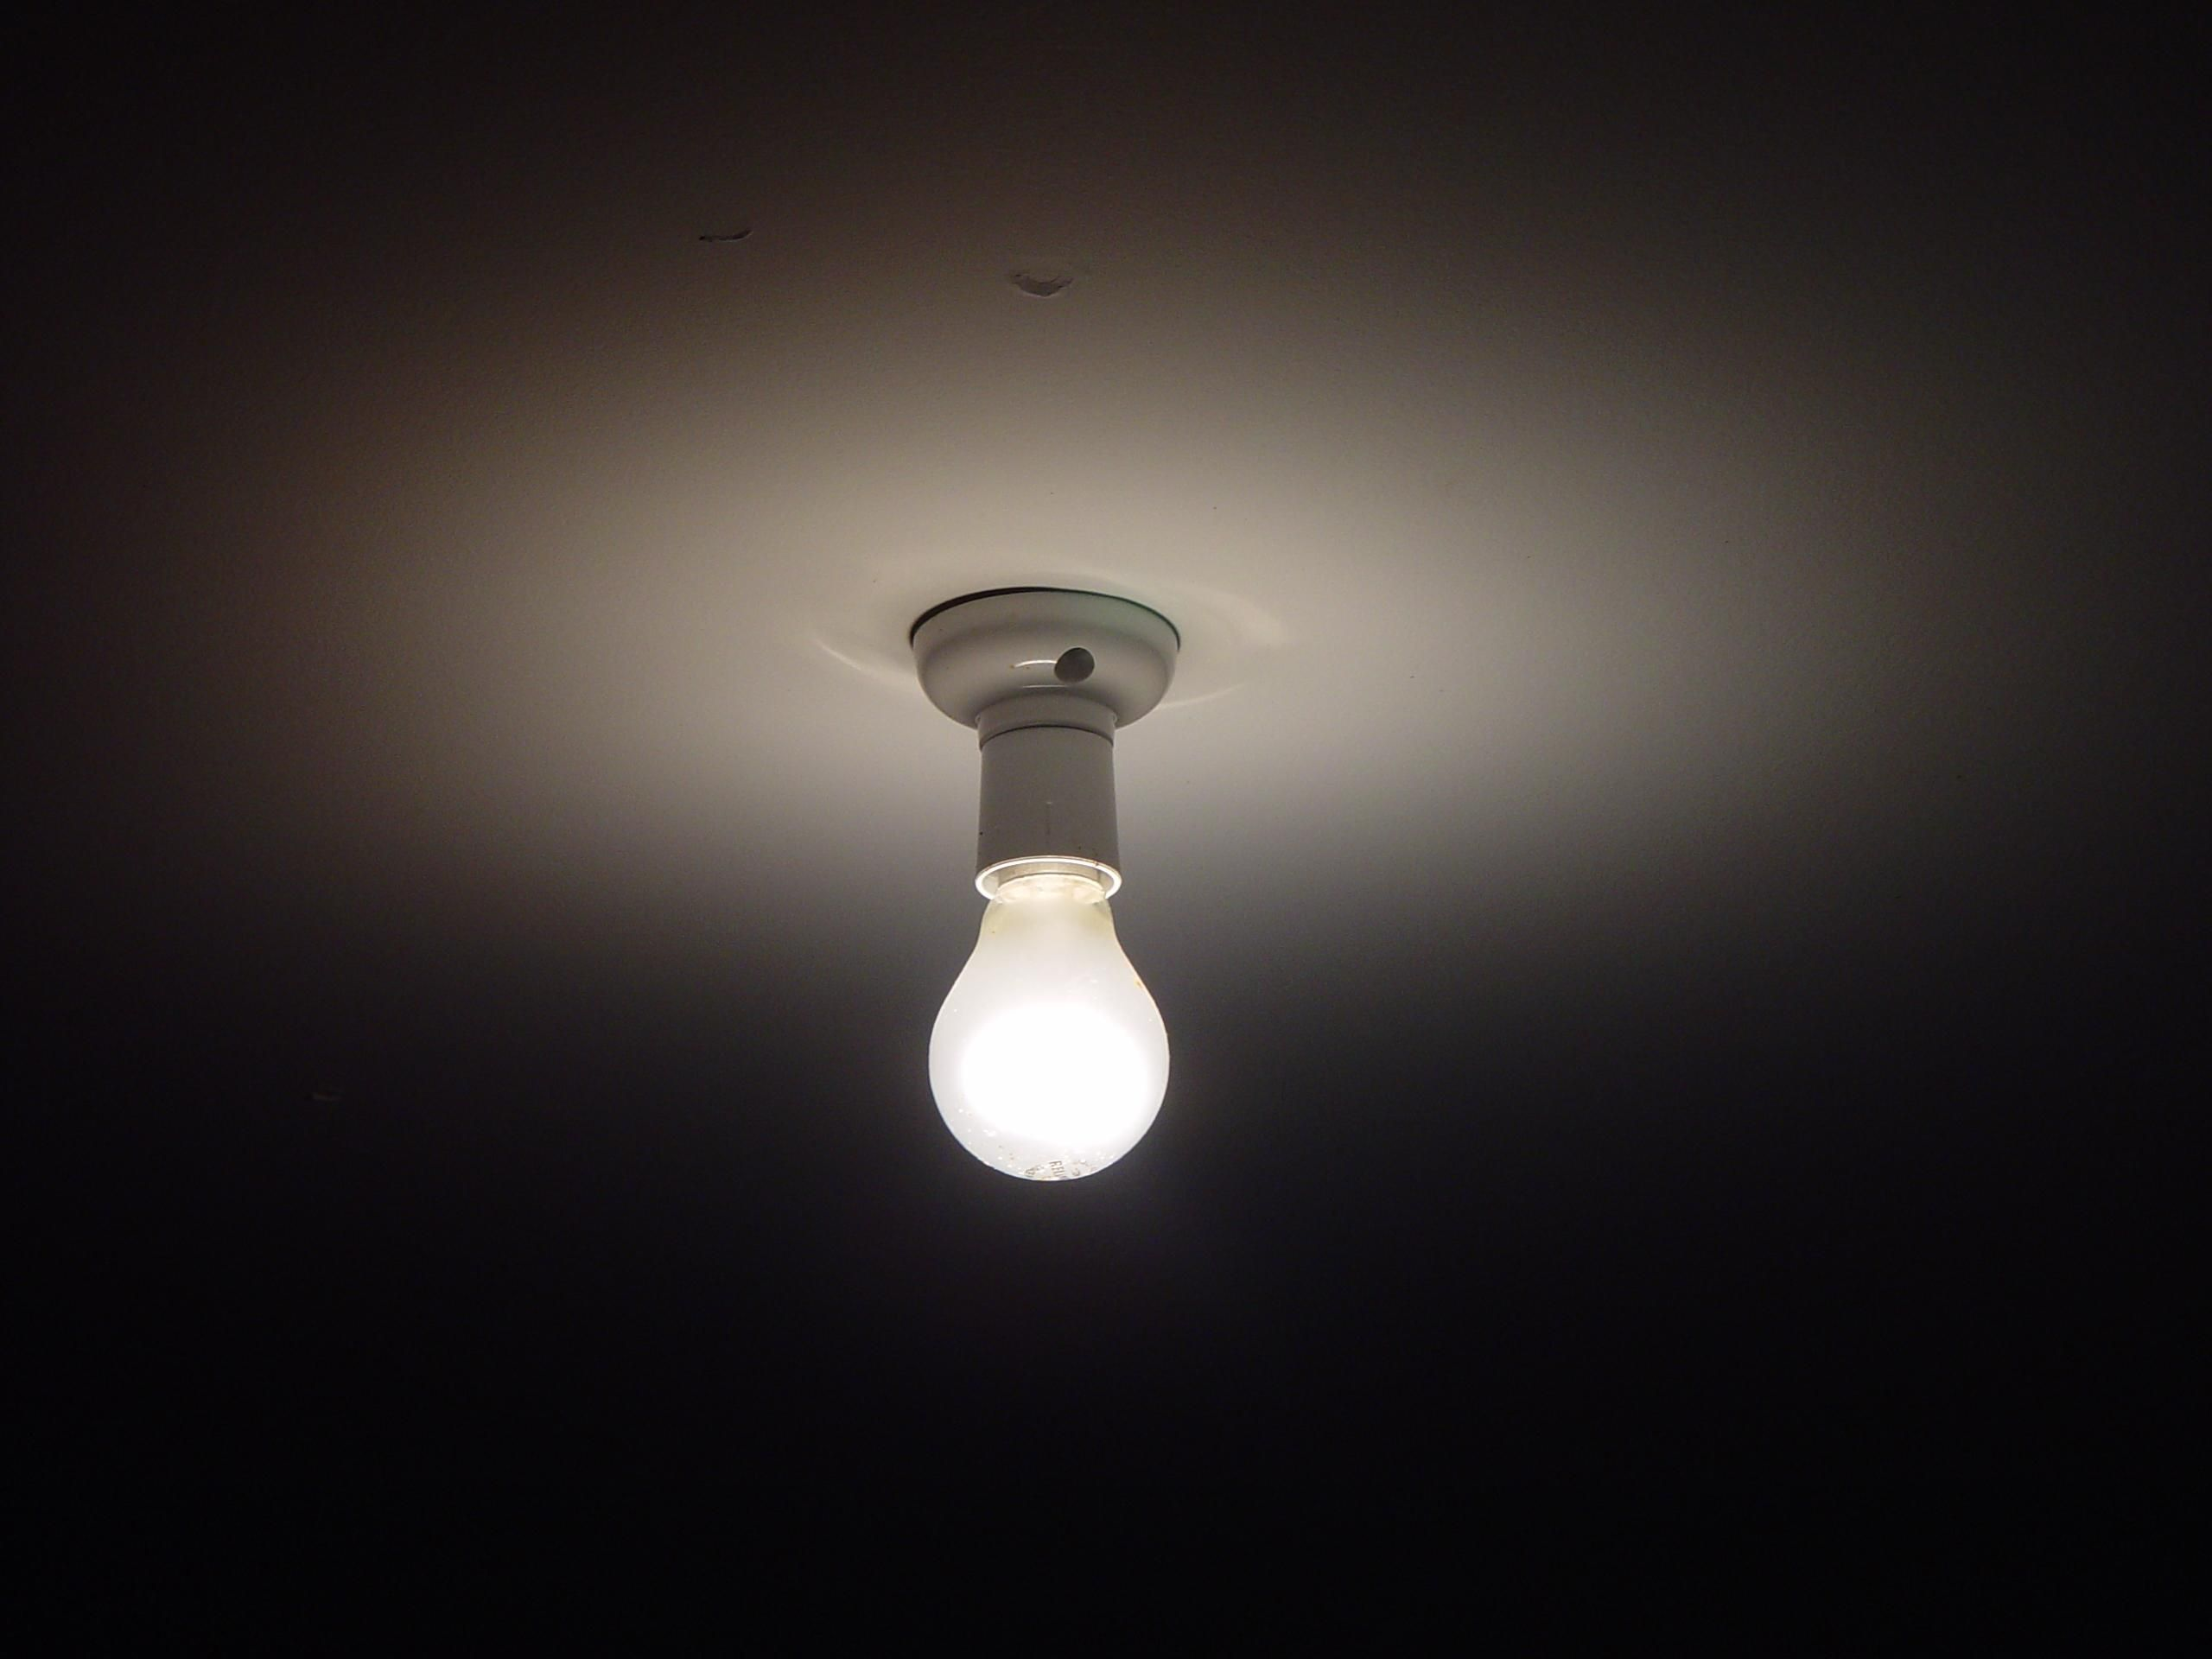 Flood Light In Kitchen Ceiling